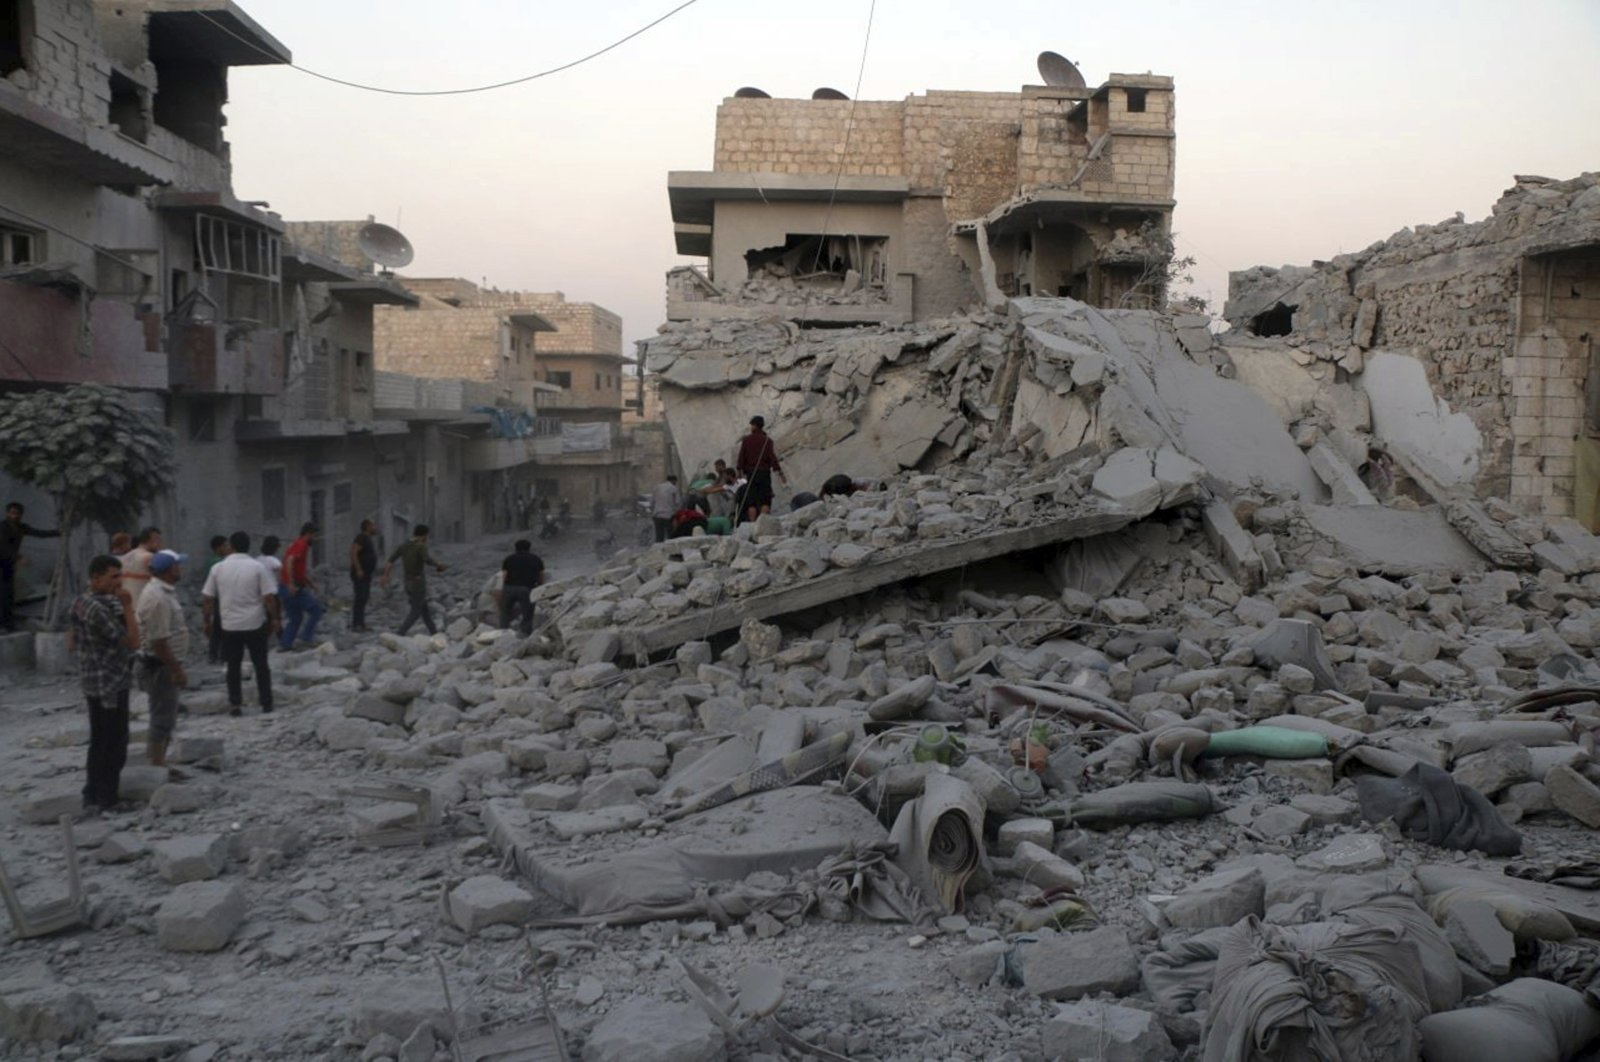 This photo released by the opposition Syrian Civil Defense rescue group, also known as White Helmets, which has been authenticated based on its contents and other AP reporting, shows people searching for victims under the rubble of destroyed buildings that were hit by airstrikes in the northern town of Maaret al-Numan, in Idlib province, Syria, Aug. 28, 2019. (AP Photo)